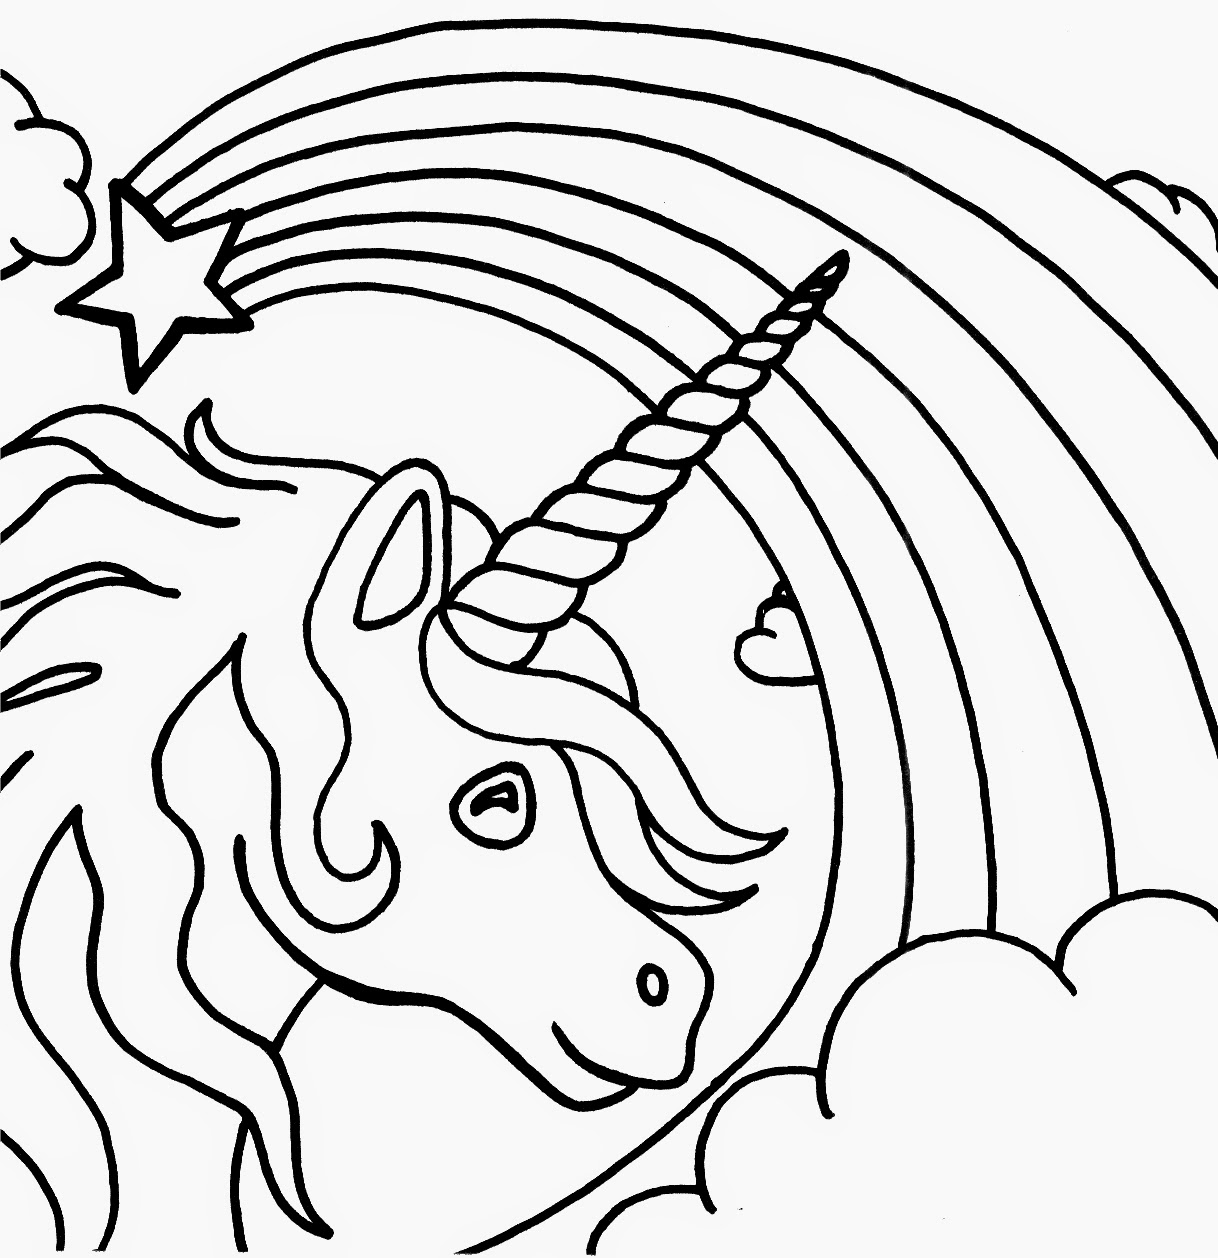 free coloring sheets unicorn free printable unicorn coloring pages winged 101 worksheets unicorn coloring free sheets